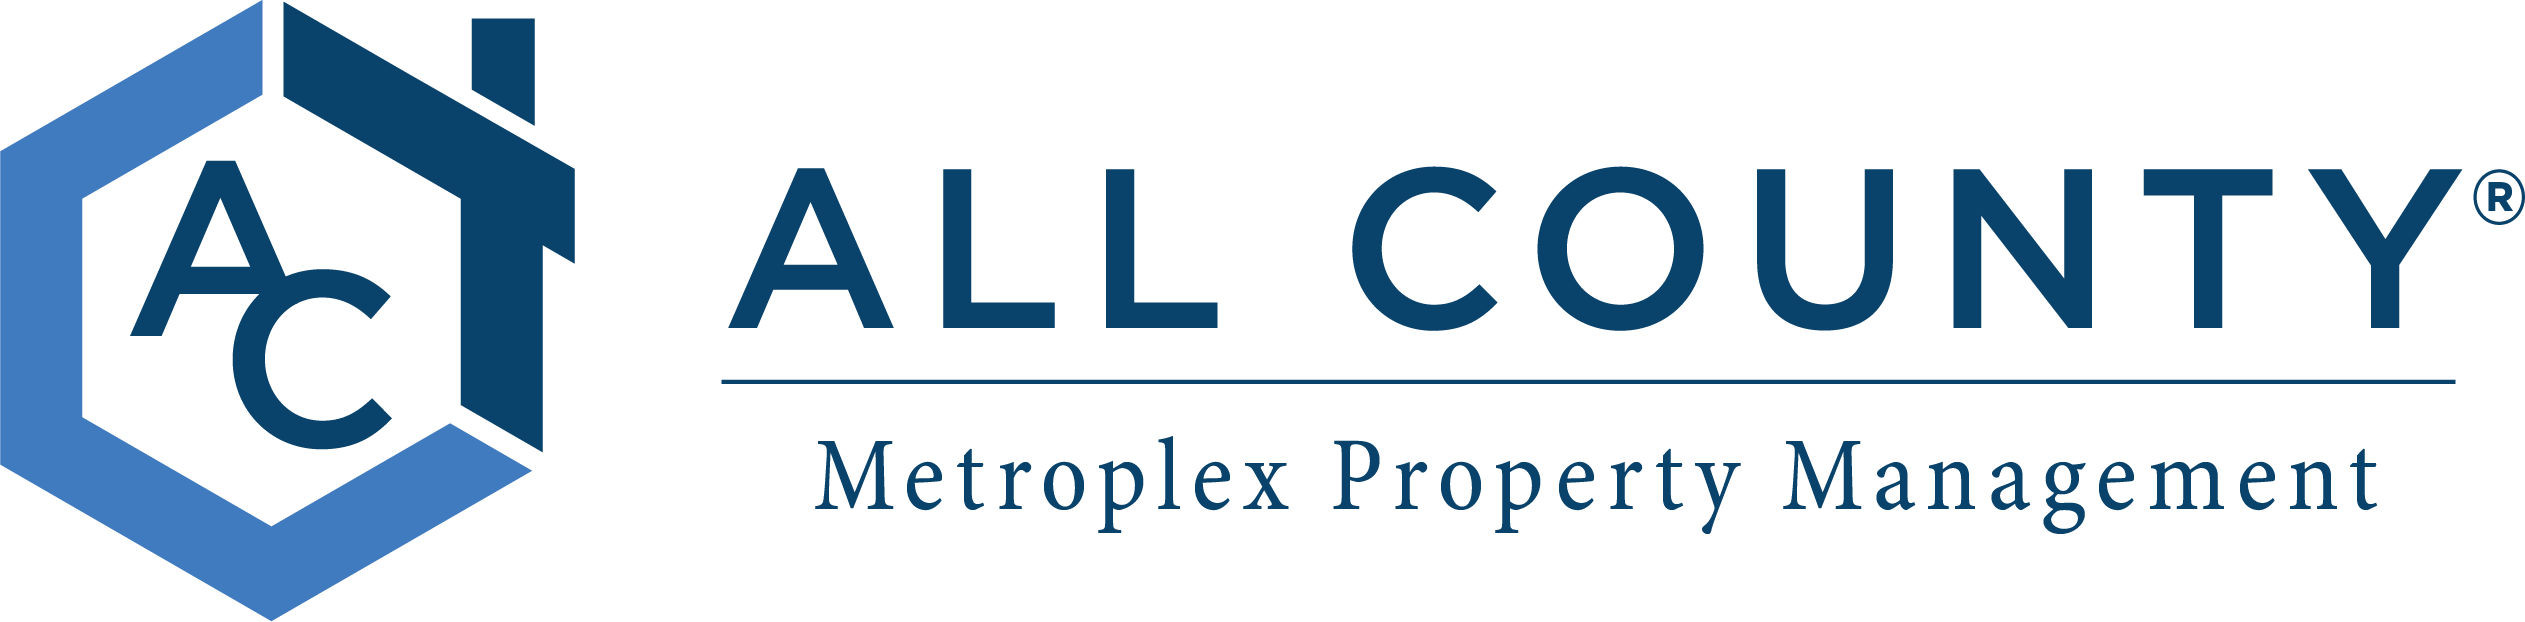 All County Metroplex Property Management